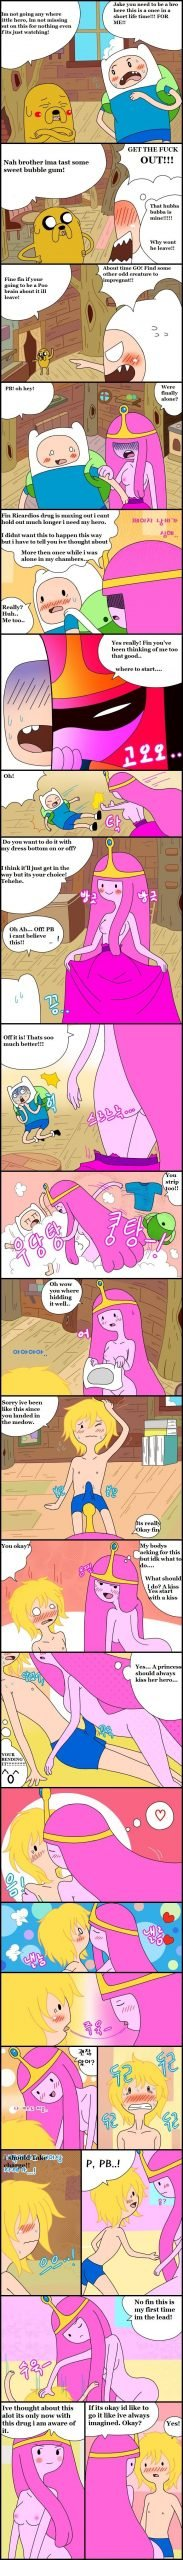 Adult Time 2 Adventure Time 05